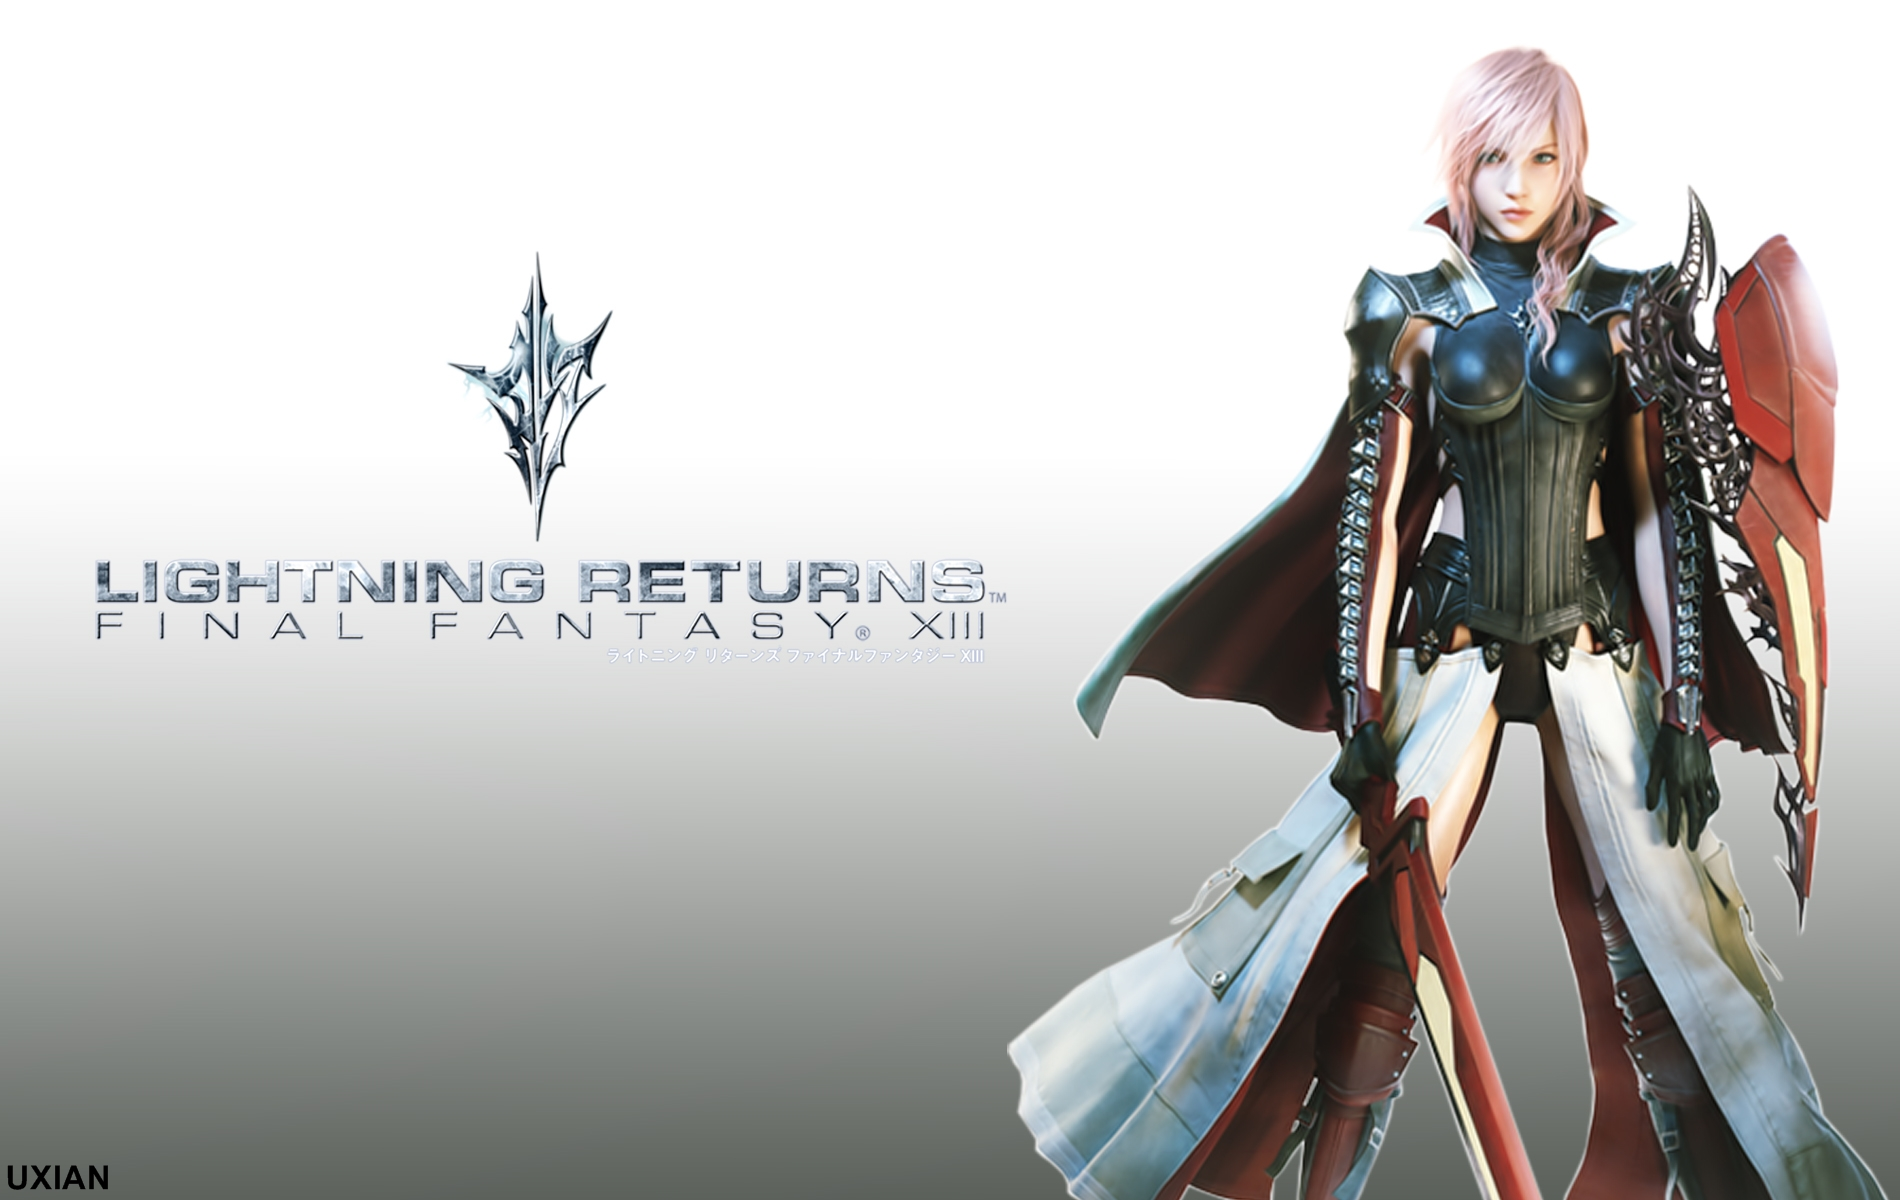 Lightning returns final fantasy xiii by uxianxiii on deviantart lightning returns final fantasy xiii by uxianxiii voltagebd Choice Image